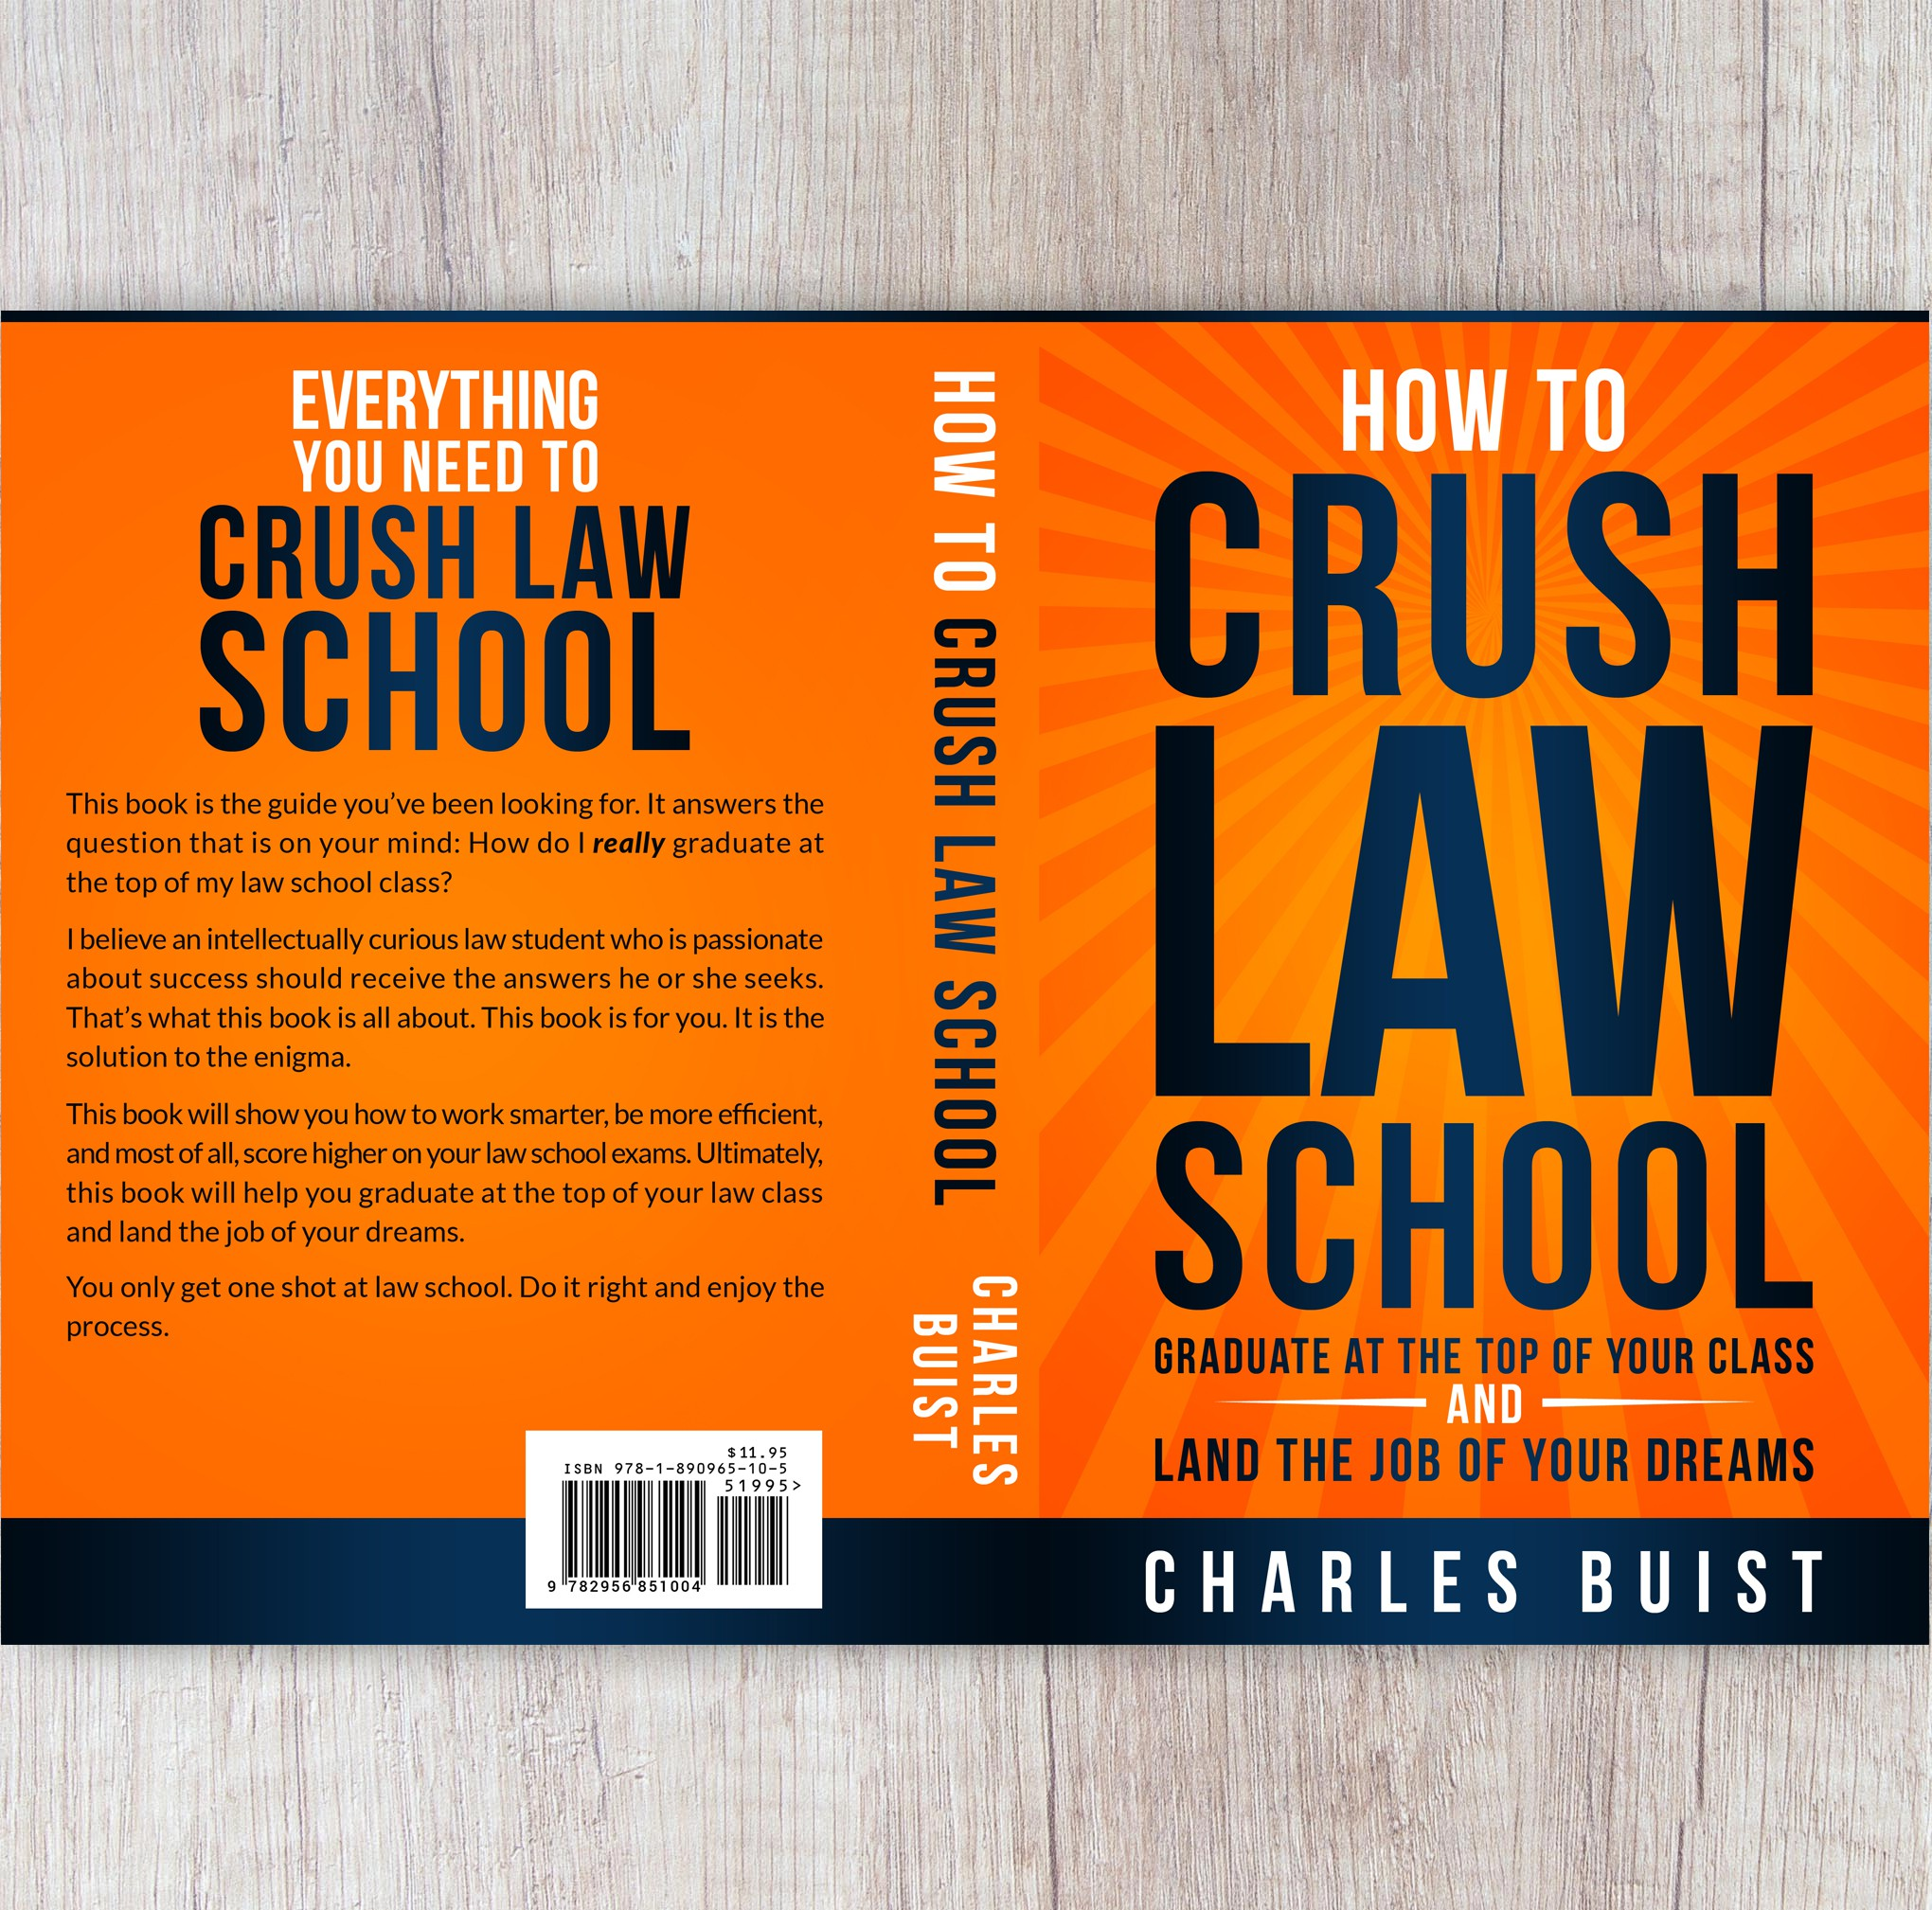 An author needs a book cover for a book written to help law students crush law school.